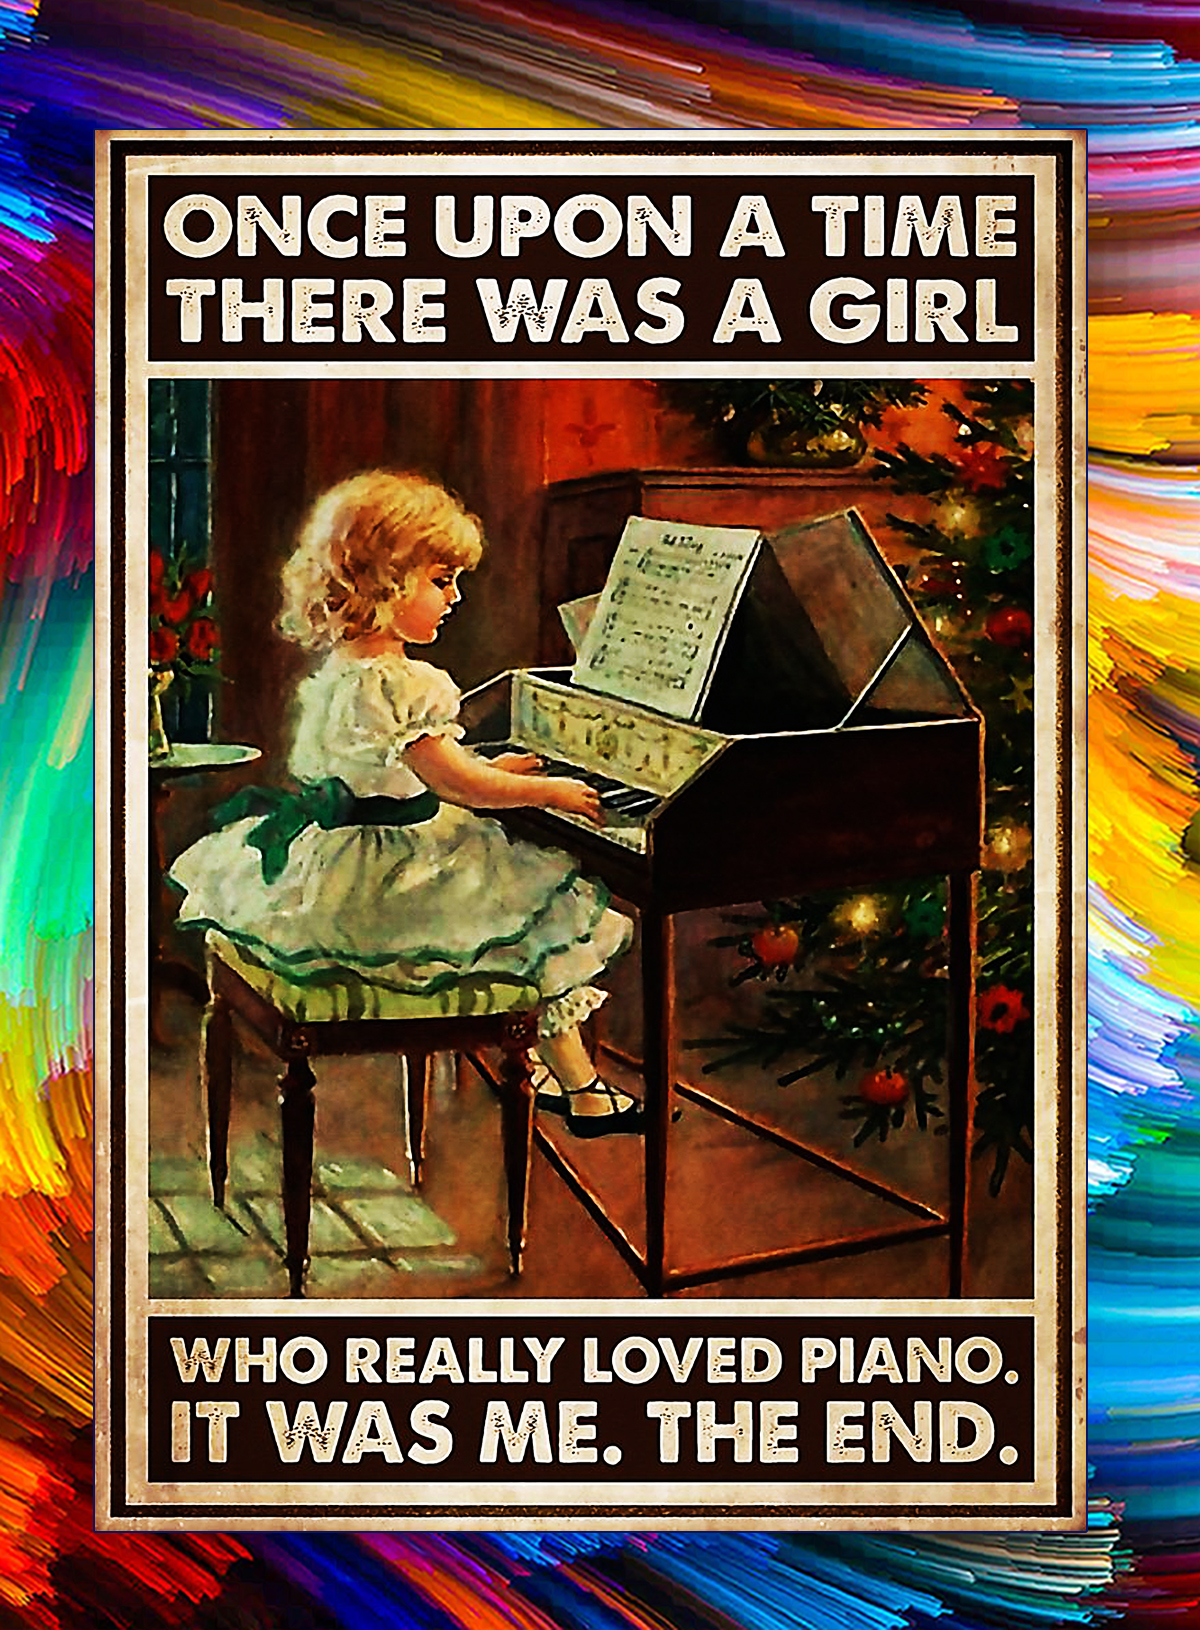 Once upon a time there was a girl who really loved piano poster - A4